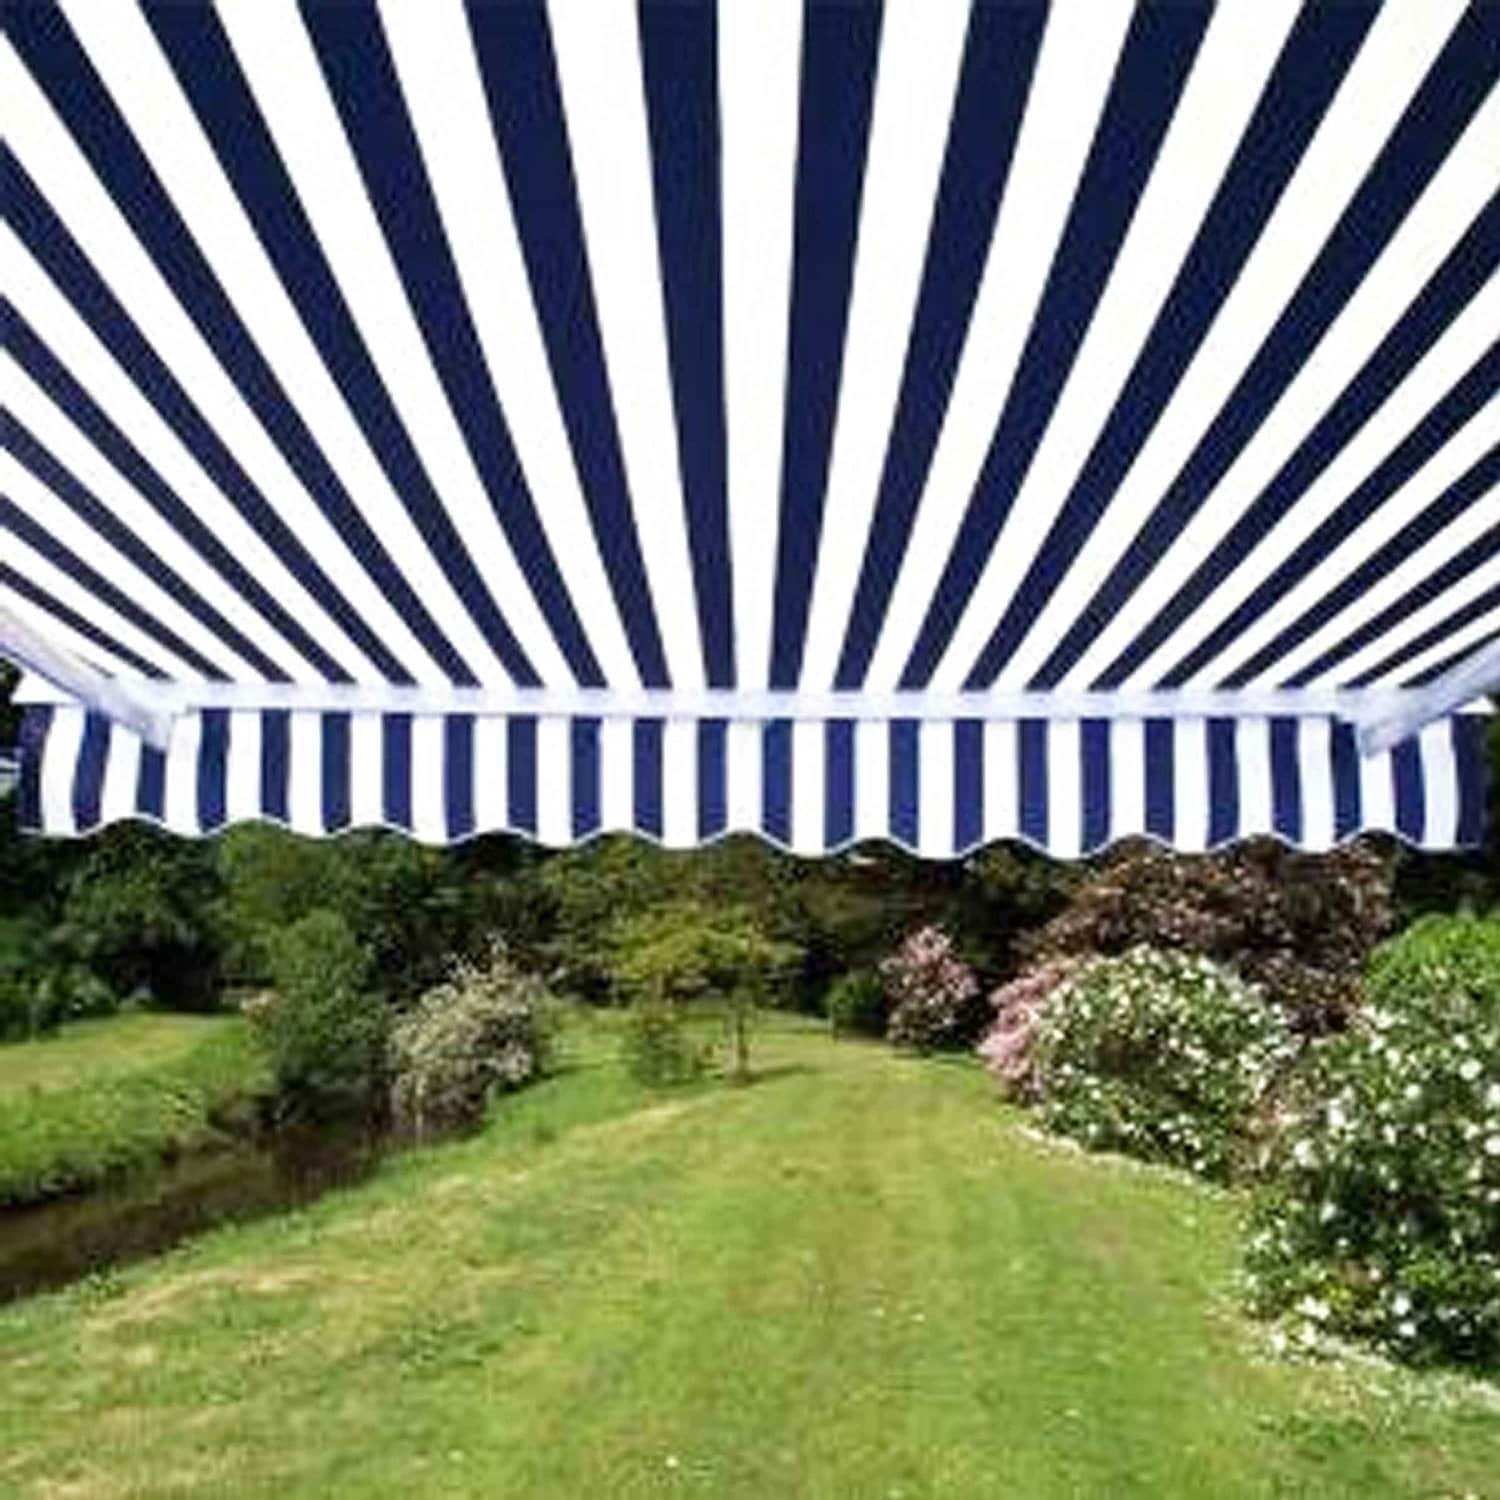 aleko motorized 13 x 10 ft retractable outdoor patio awning blue white